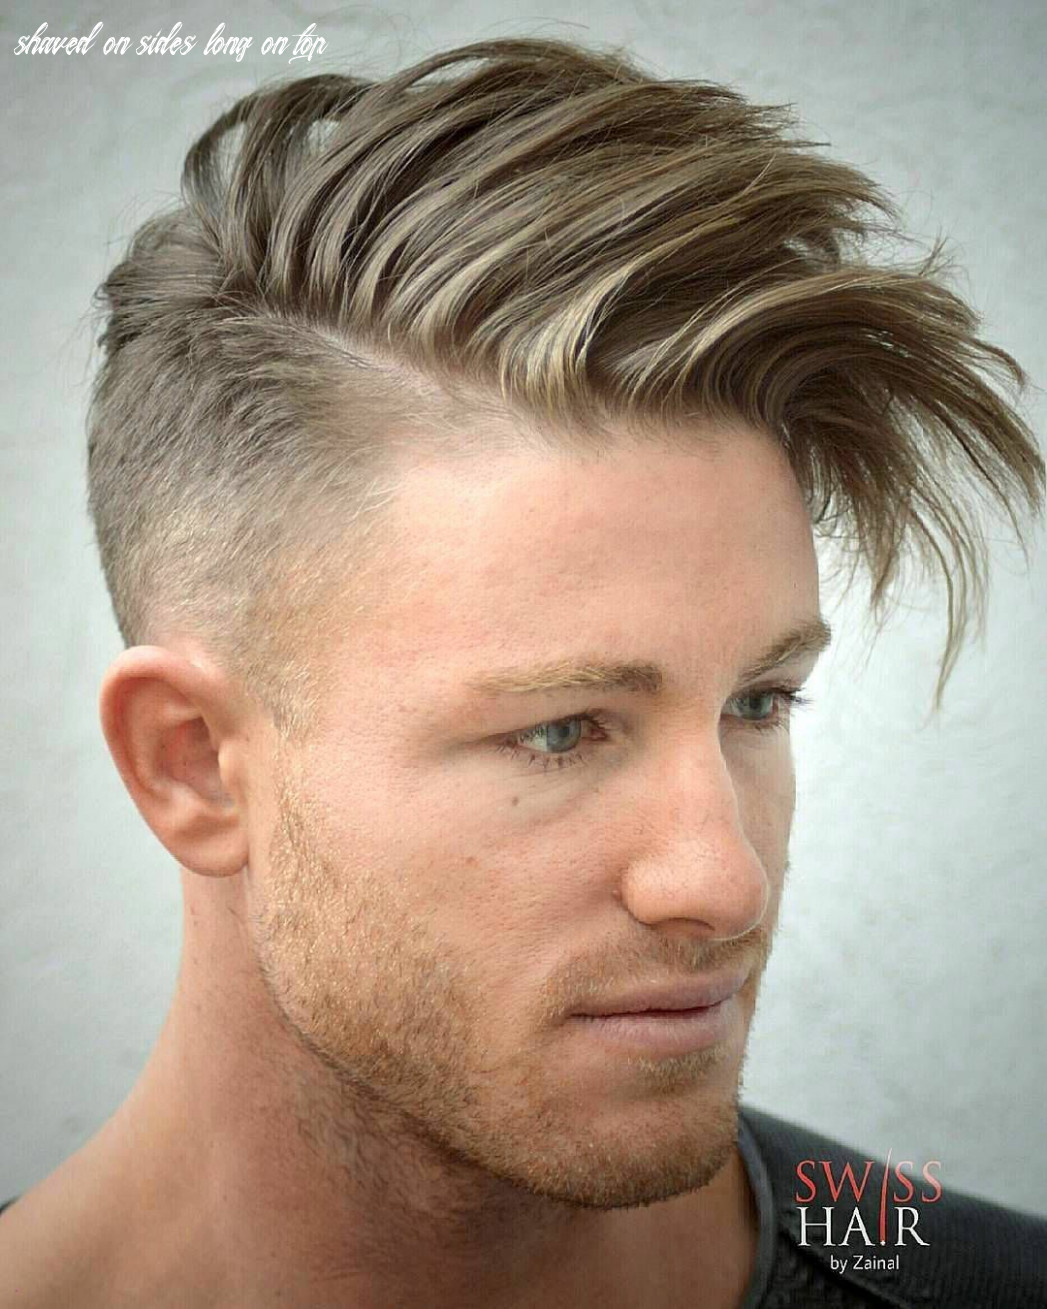 Boy haircut shaved sides long top elegant 9 men s hairstyles to